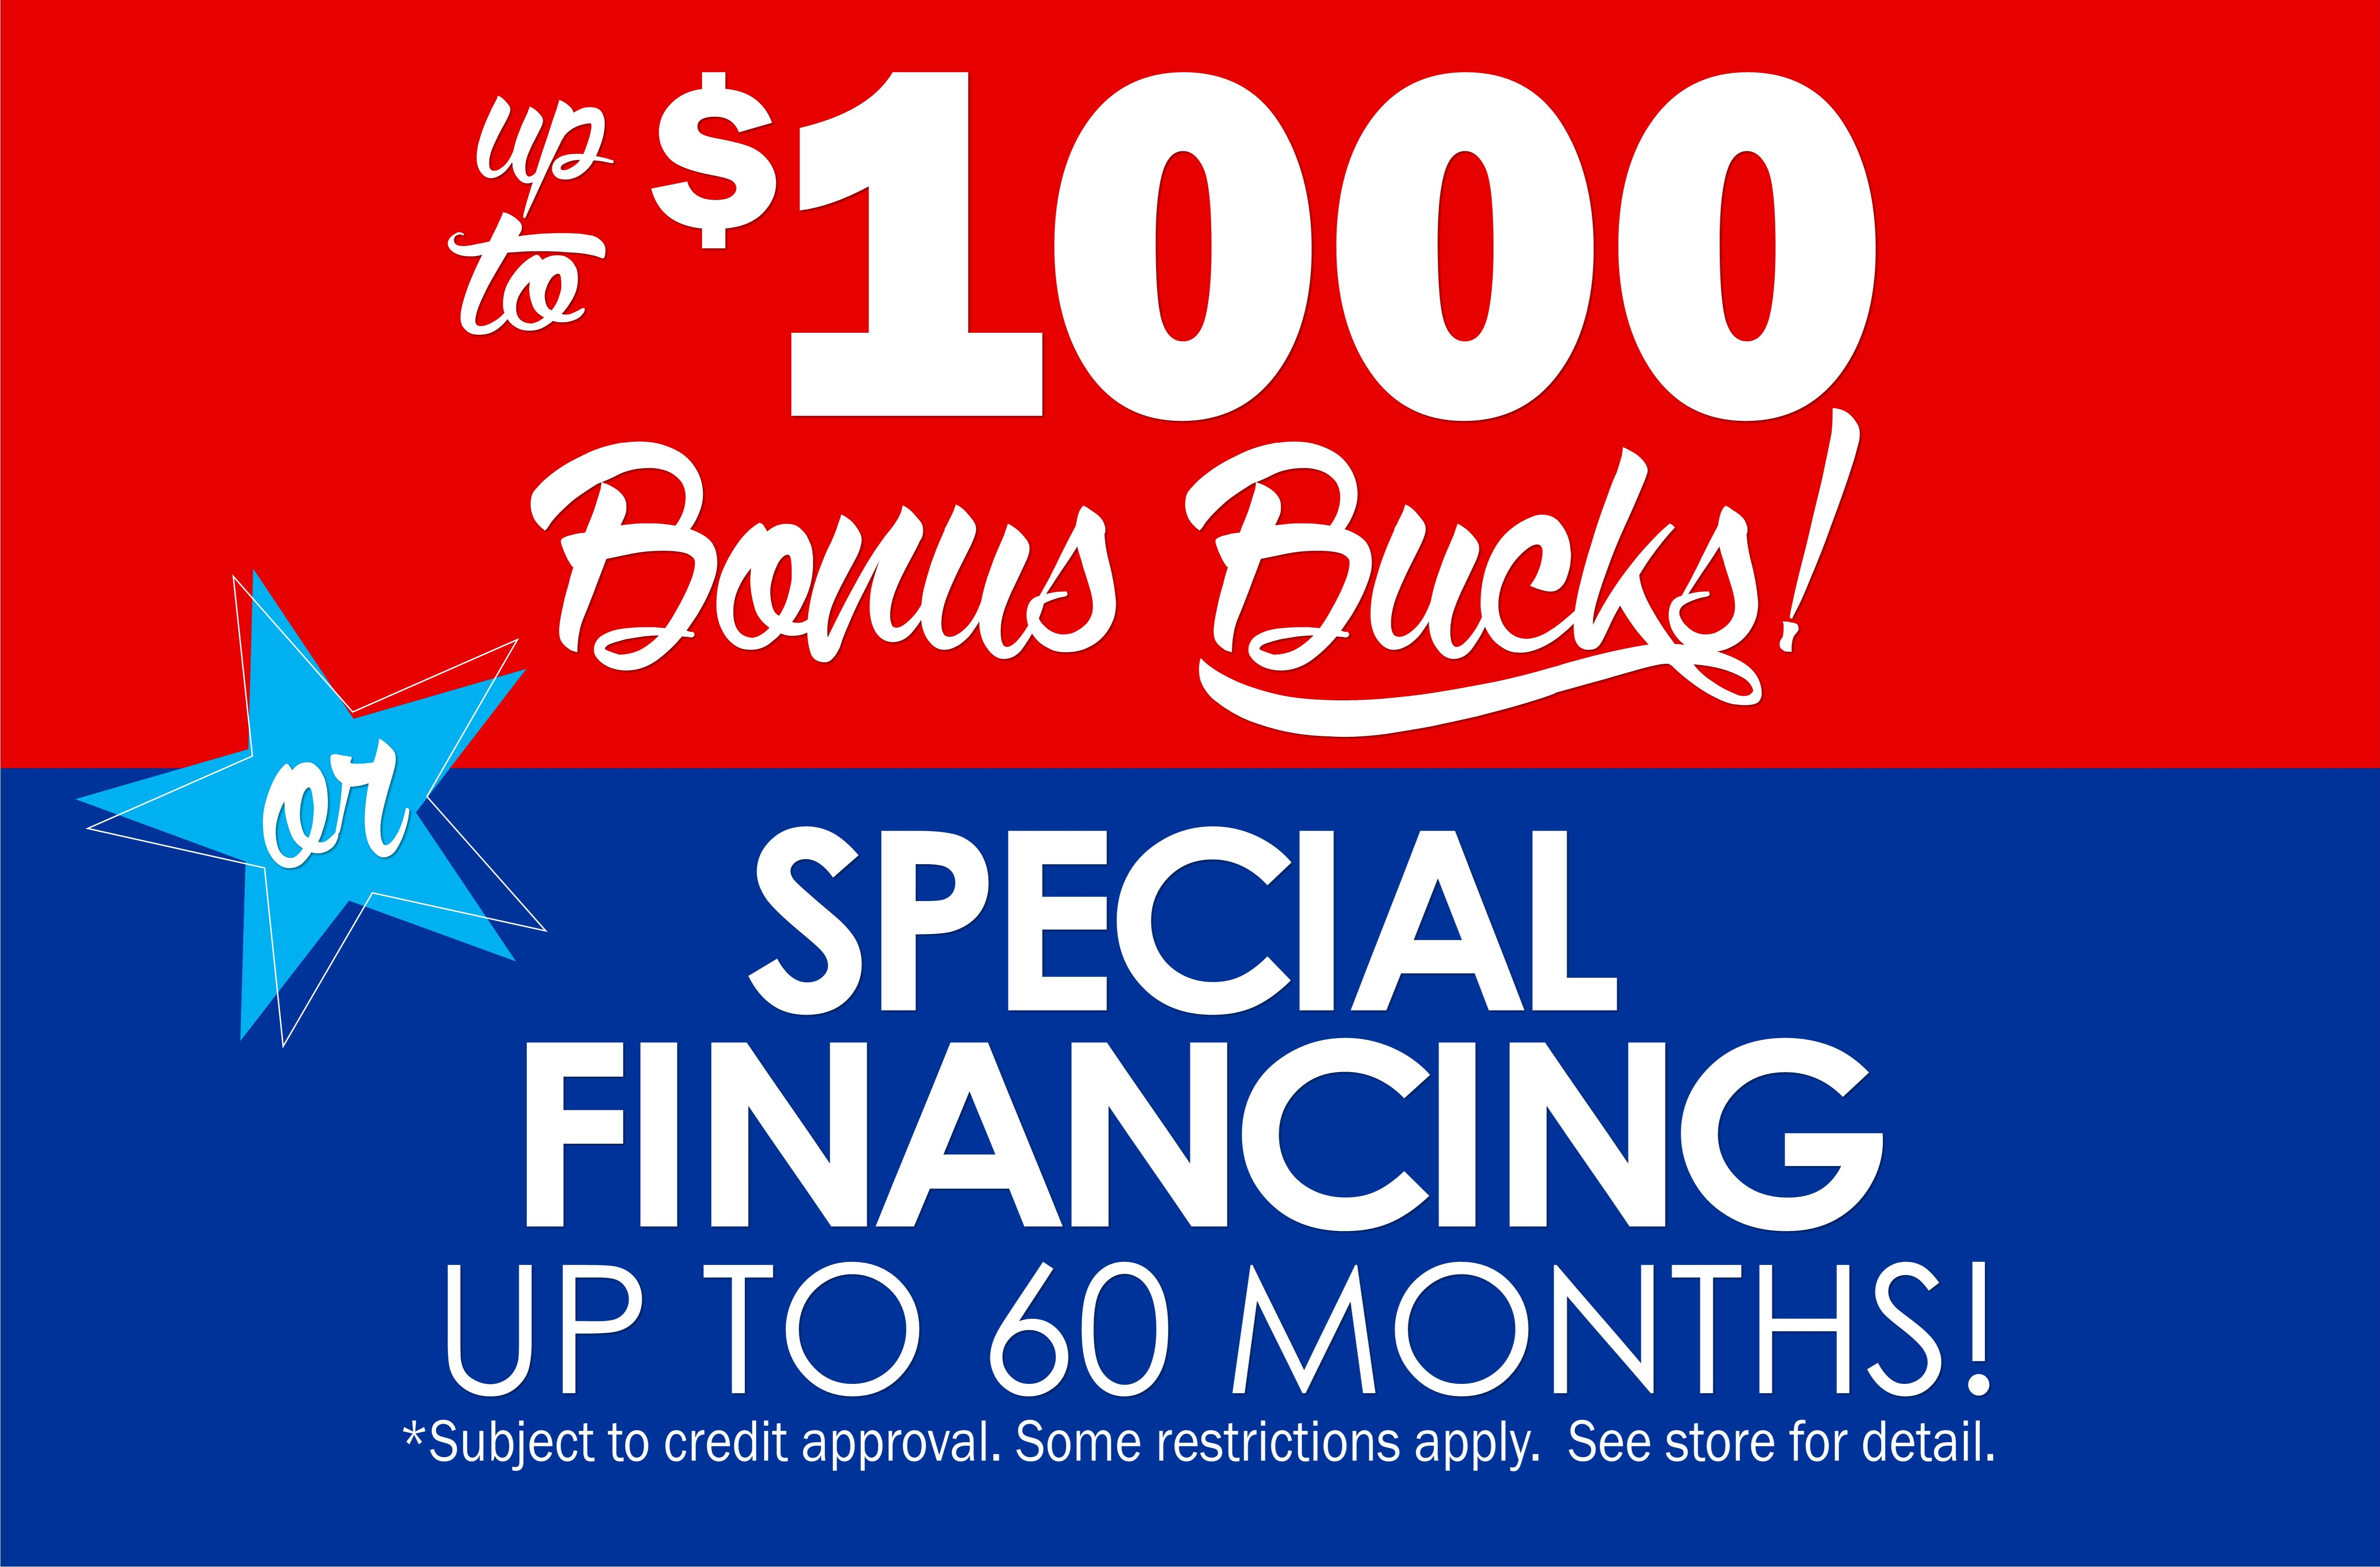 Up to $1000 Bonus Bucks or Special Financing up to 60 Months